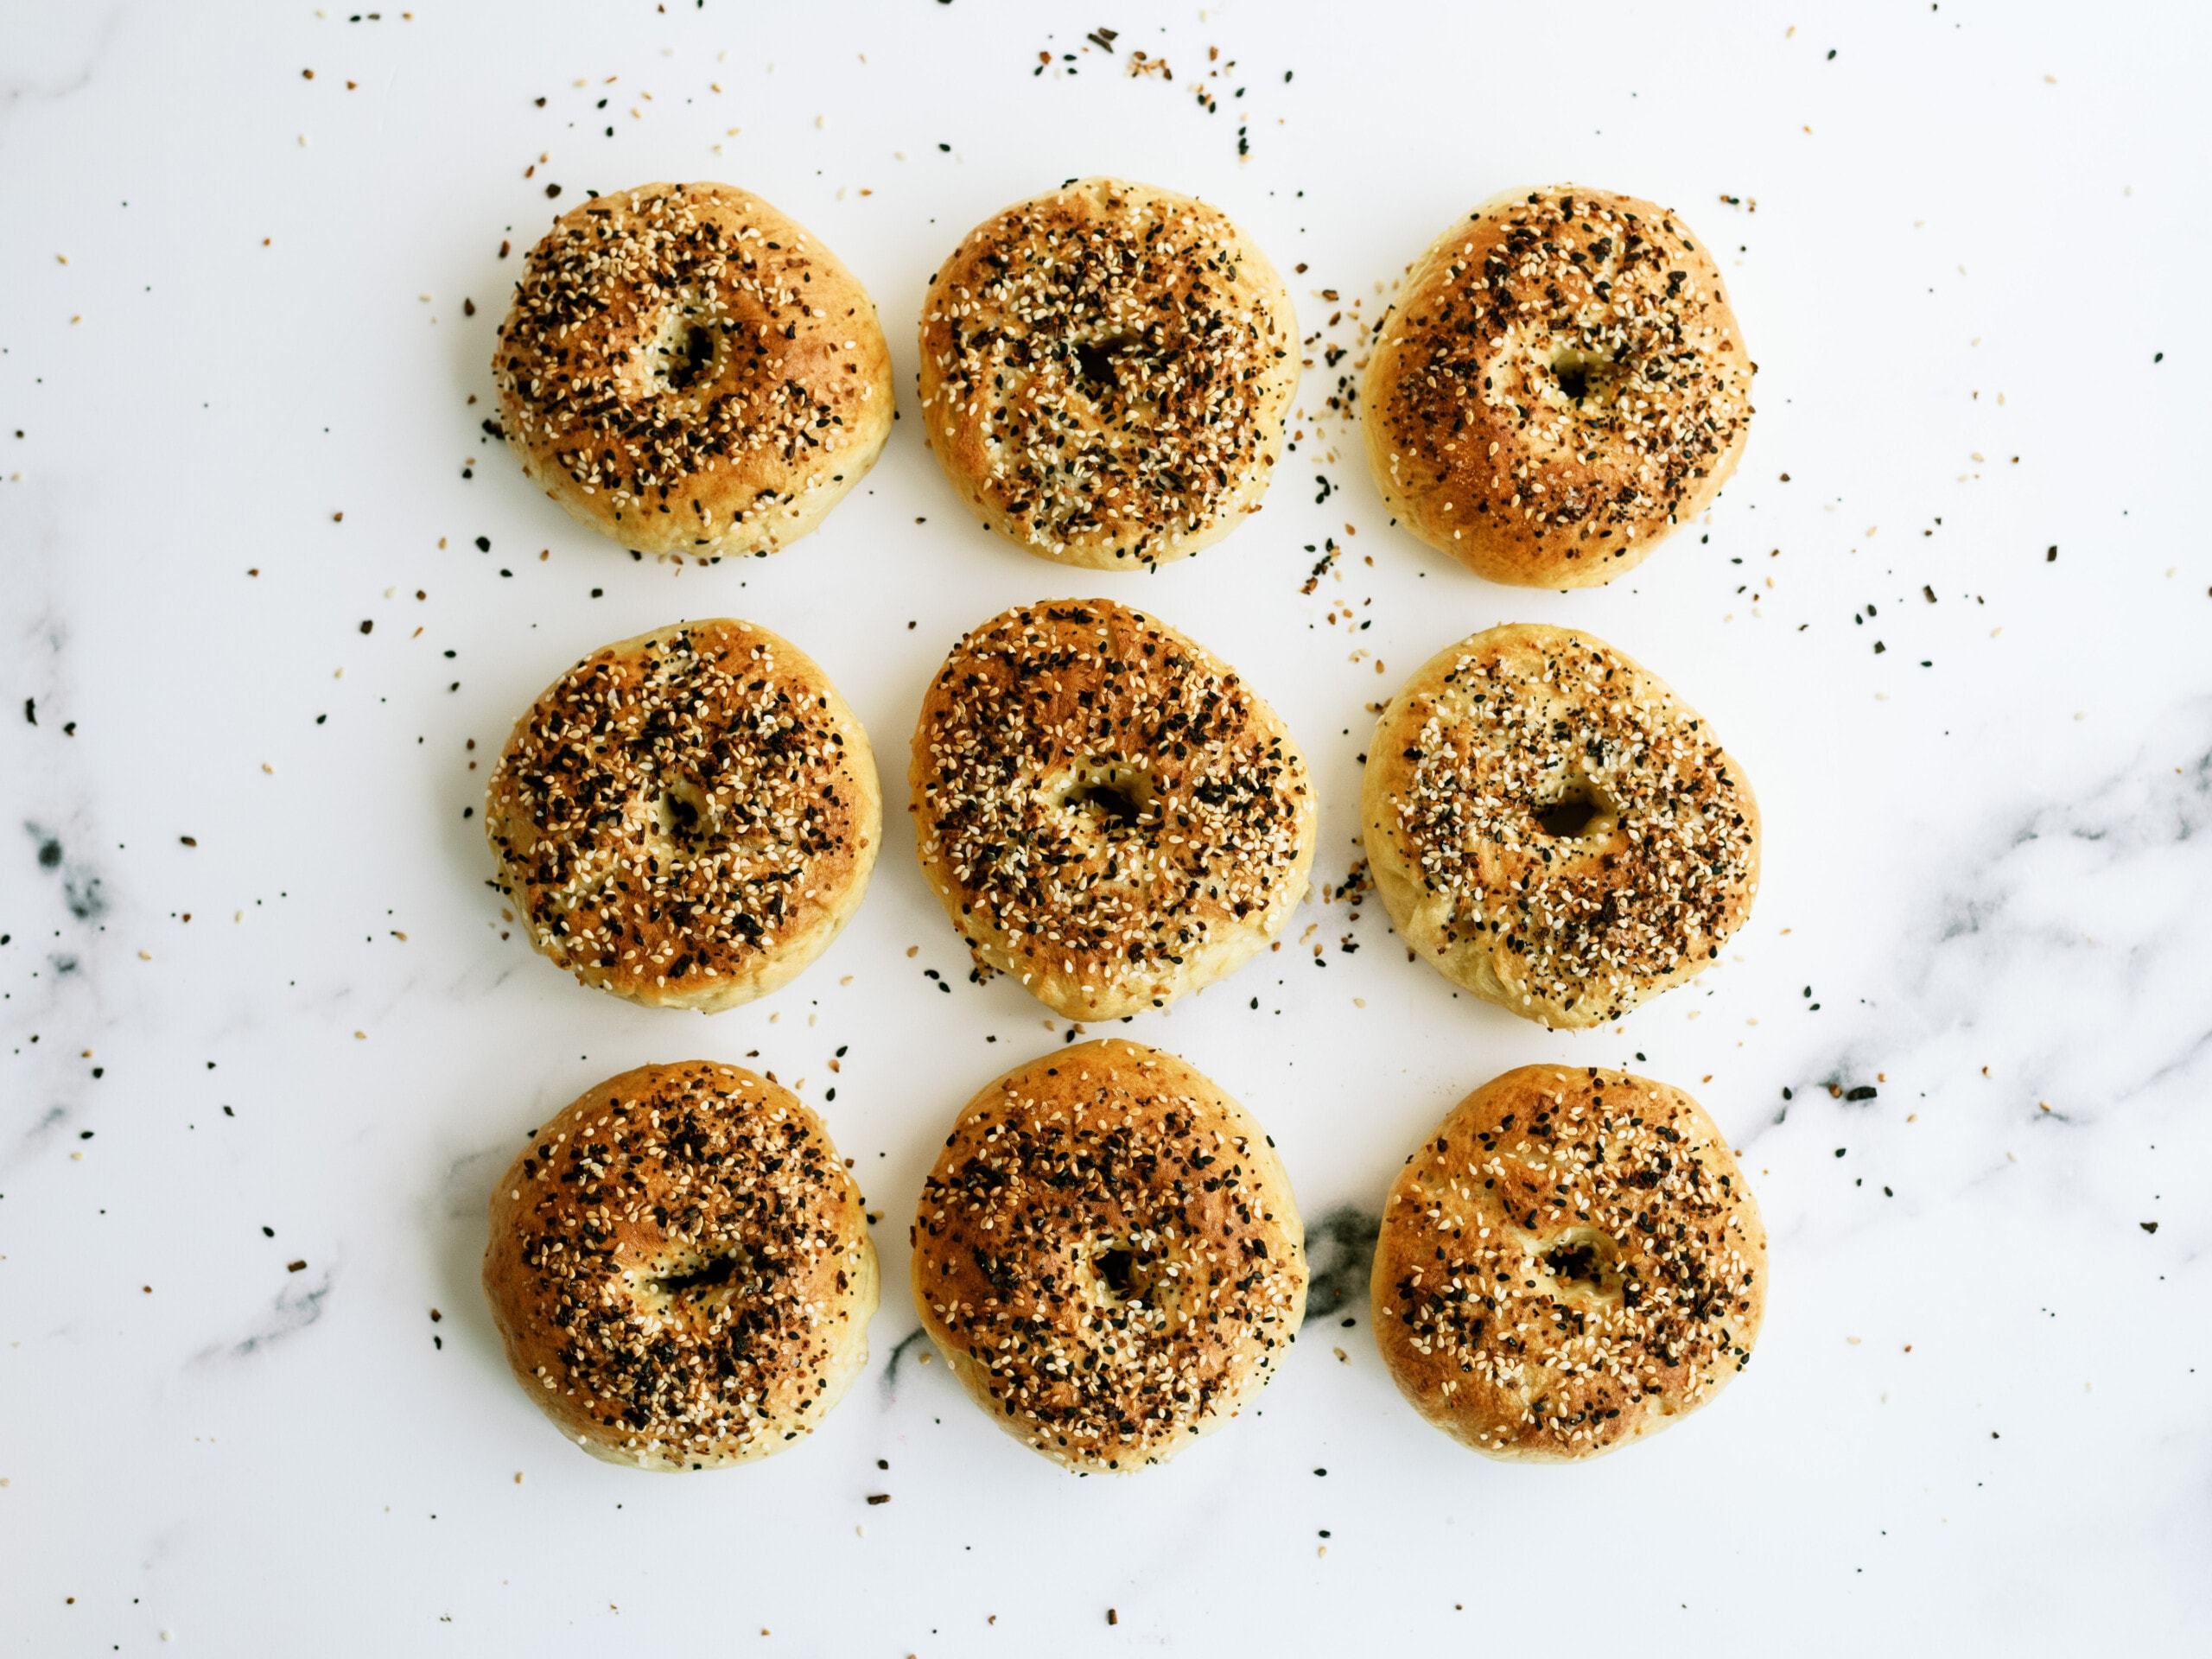 9 bagels in a 3 by 3 square on a white counter top